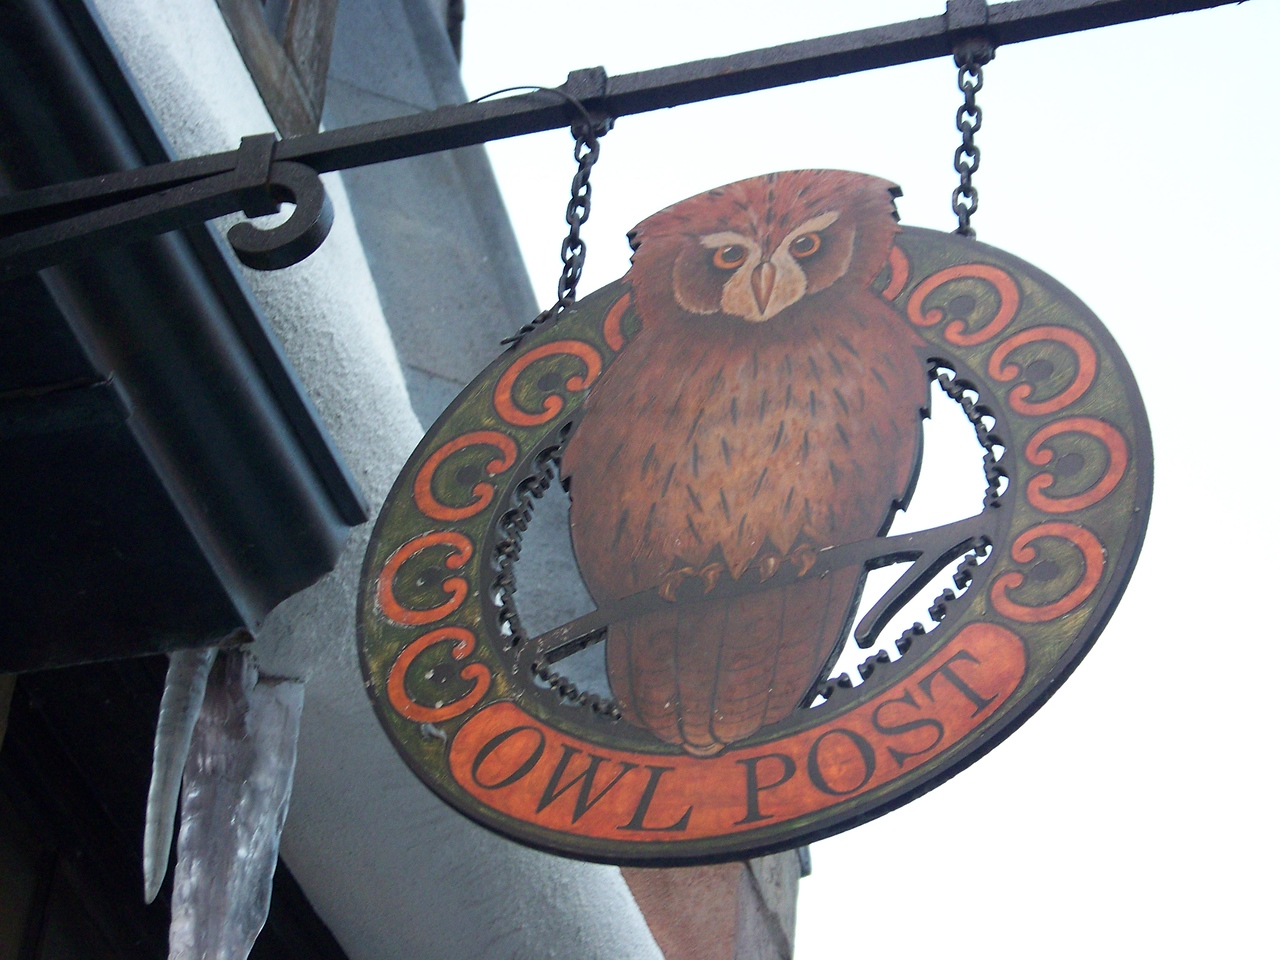 Owl Post sign.<br /> [Universal Islands of Adventure - Wizarding World of Harry Potter]